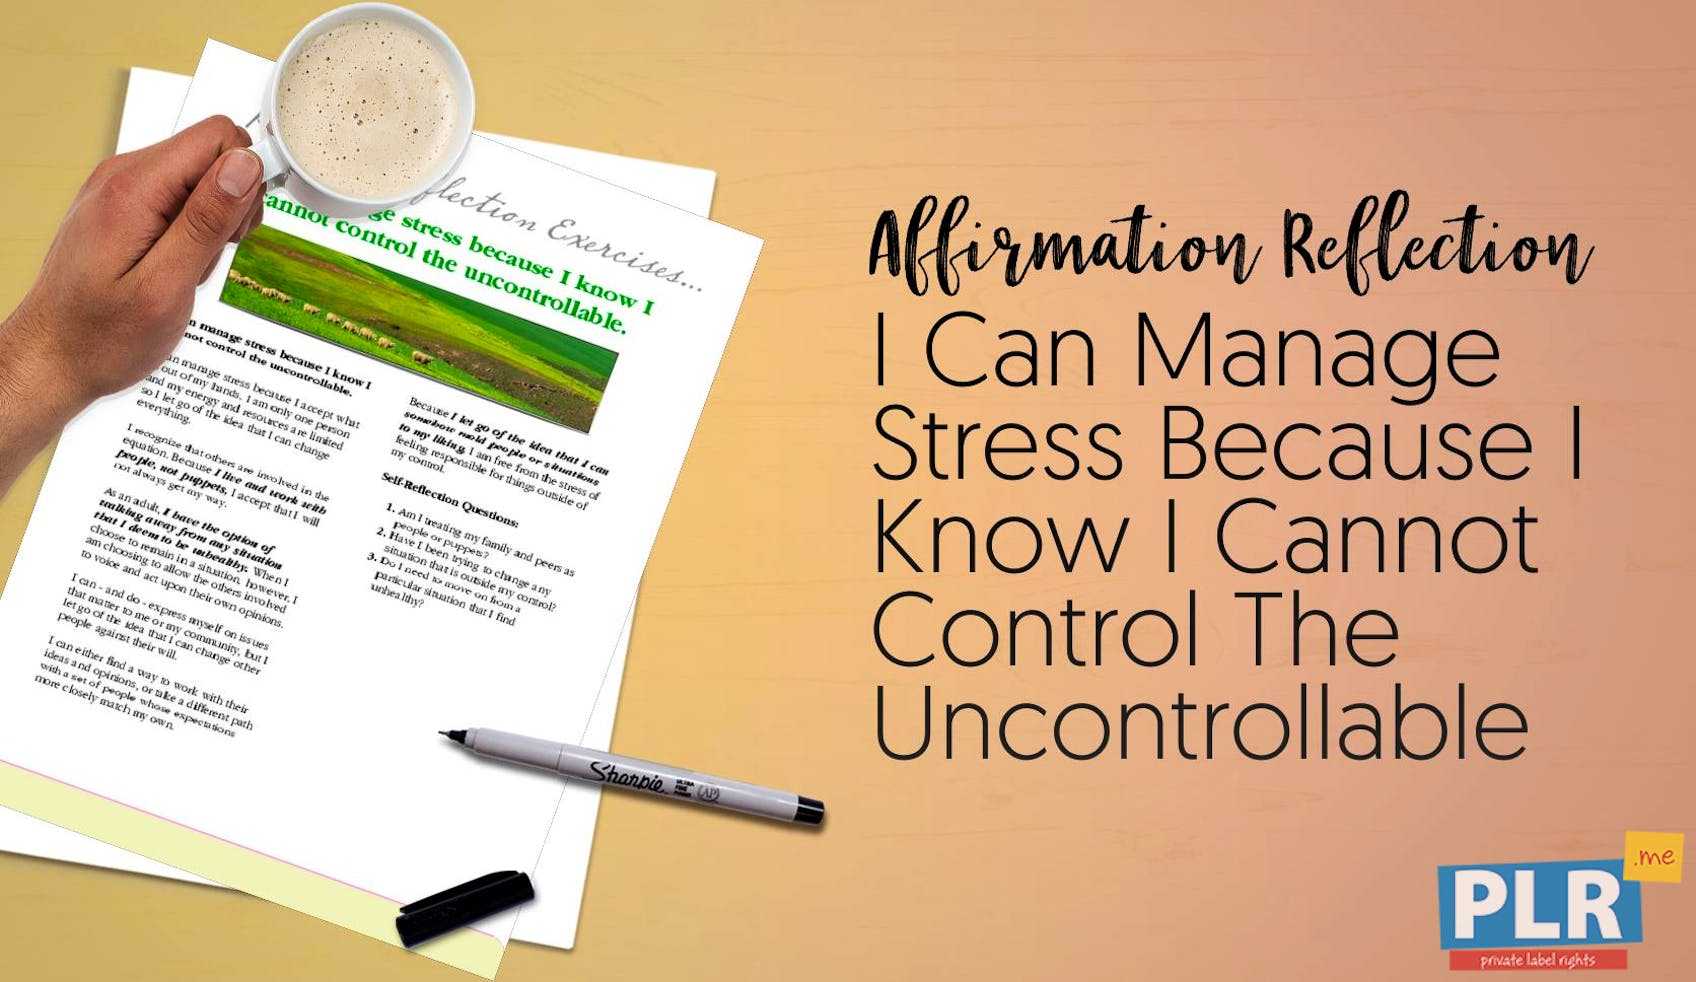 I Can Manage Stress Because I Know I Cannot Control The Uncontrollable